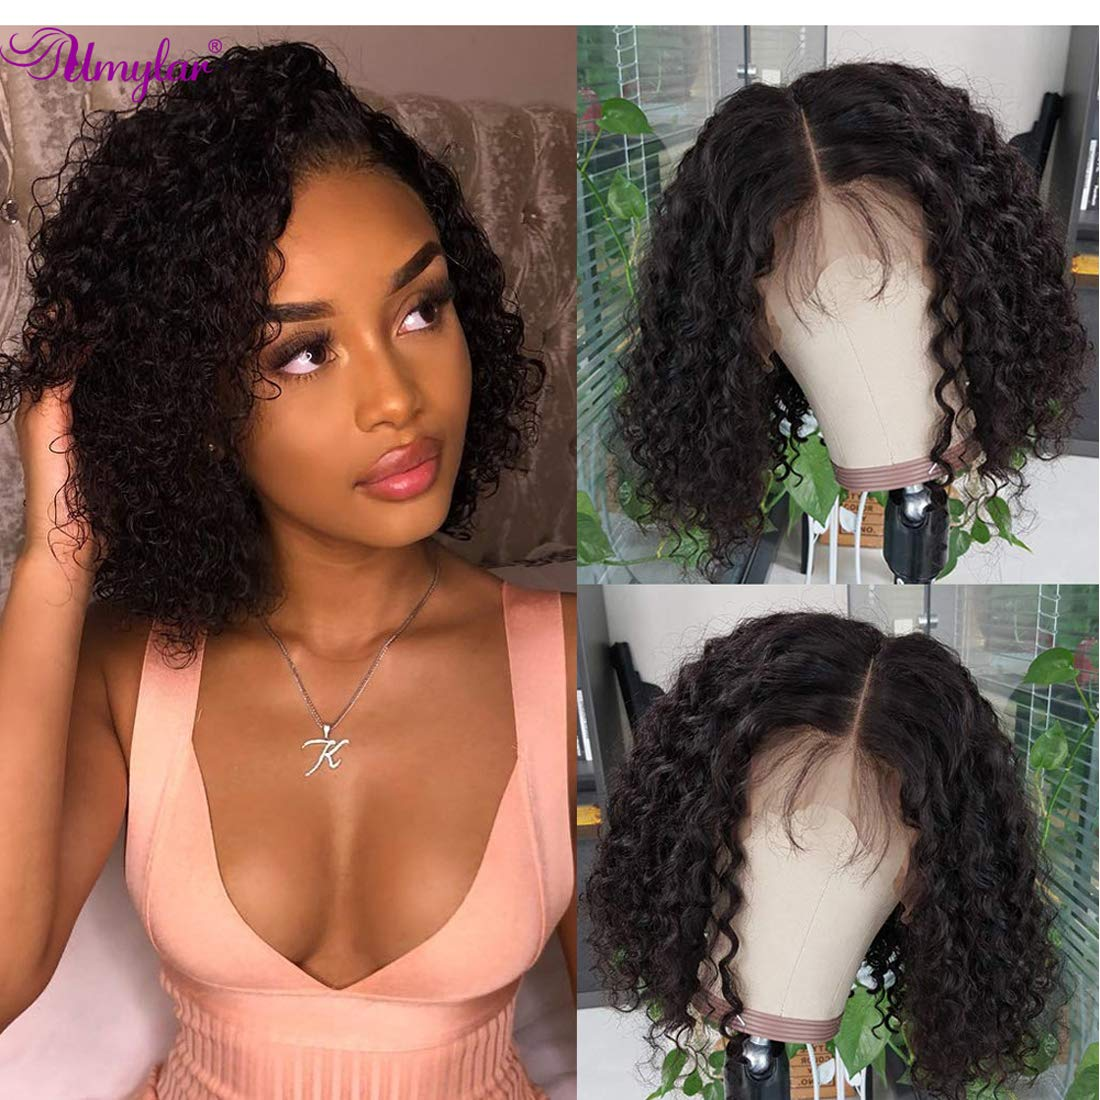 Amazon Com Umylar Human Hair Lace Front Wigs 13x4 Curly Wig With Baby Hair Bleached Knots Pre Plucked Deep Curly Lace Front Bob Wigs Virgin Brazilian Human Hair Lace Frontal Wig 150